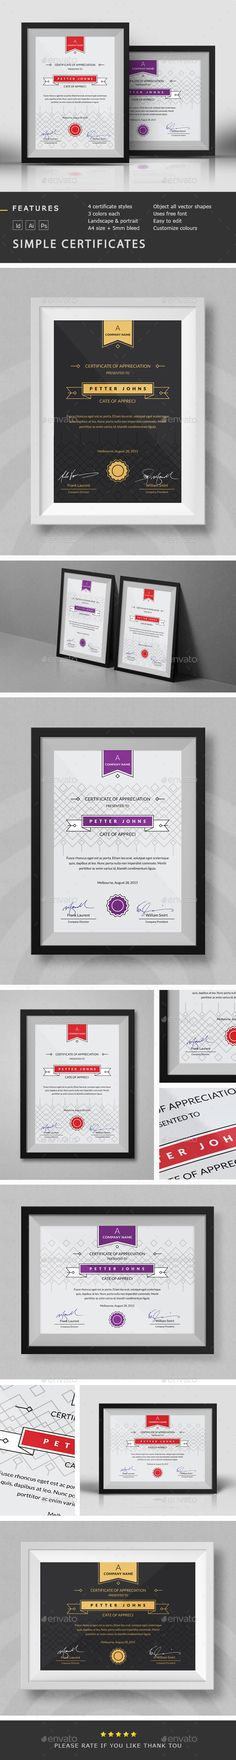 Simple Certificates Template PSD, InDesign INDD, Vector AI. Download here: http://graphicriver.net/item/simple-certificates-template/10221588?ref=ksioks